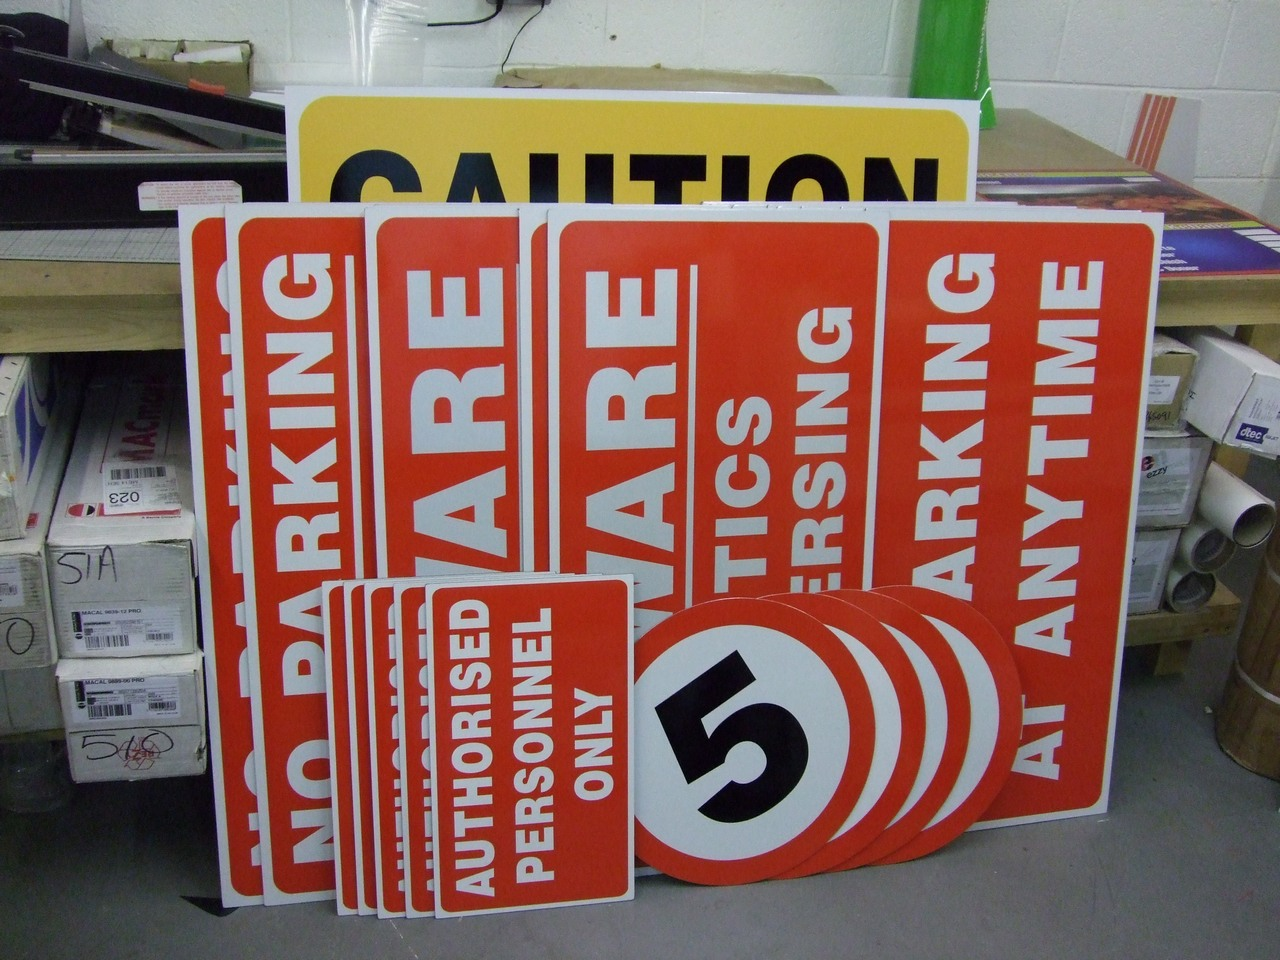 Printing Milton Keynes Cheapest Shop Signs And Vehicle Wrap